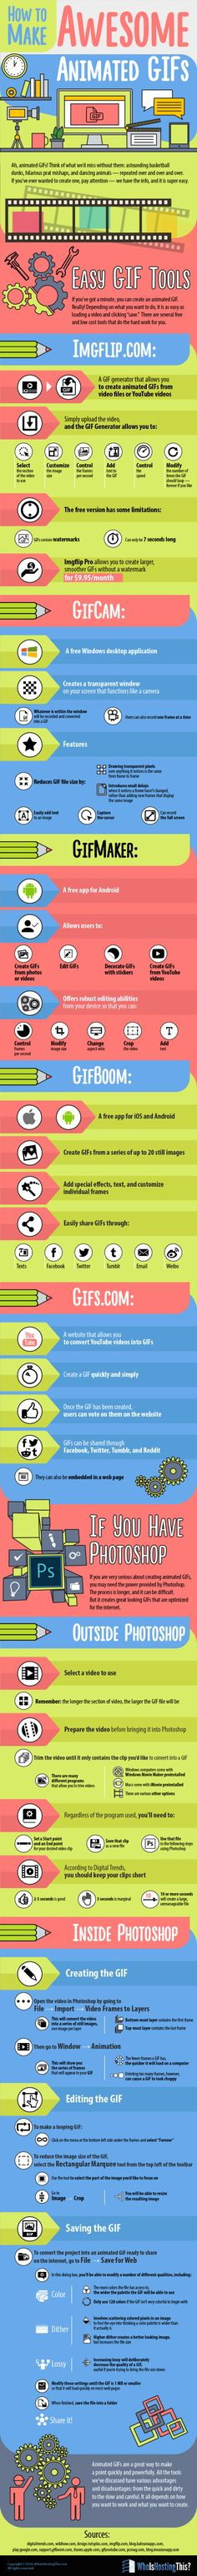 How to Make Animated GIFs That Will Improve Your Social Media Strategy [Infographic] - @Red Website Design